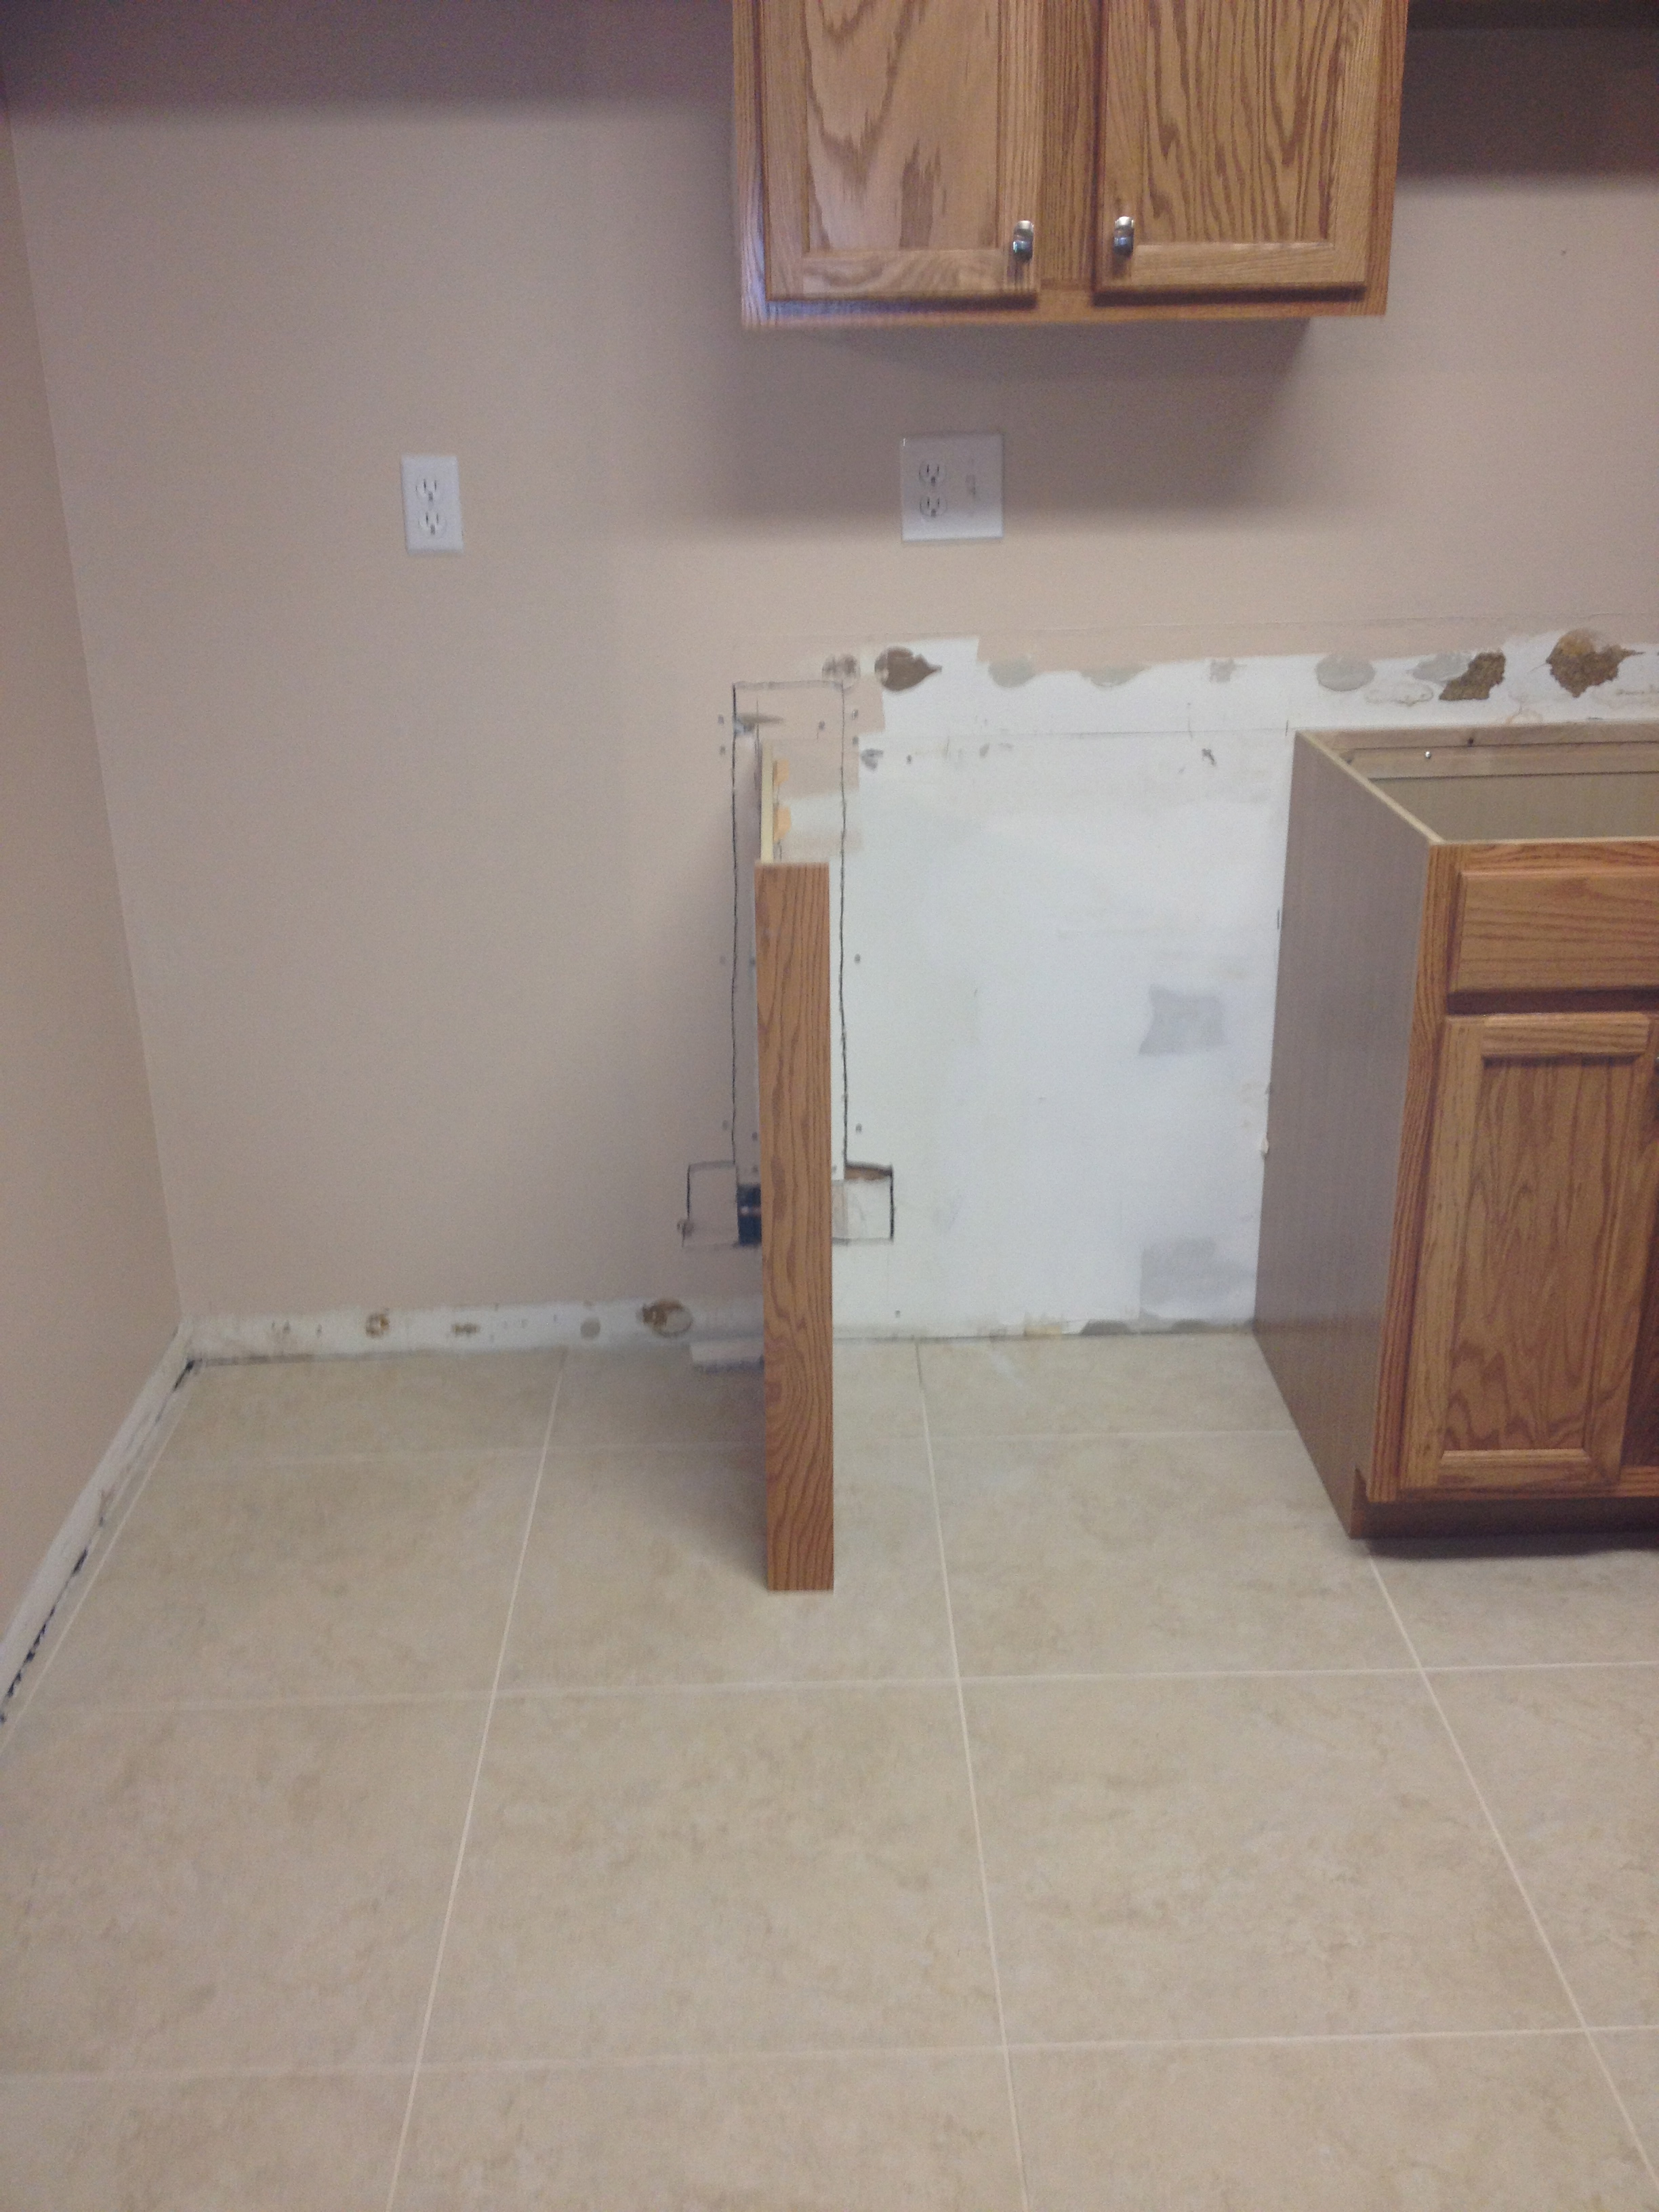 new tile flooring installed in the kitchen | code red restoration